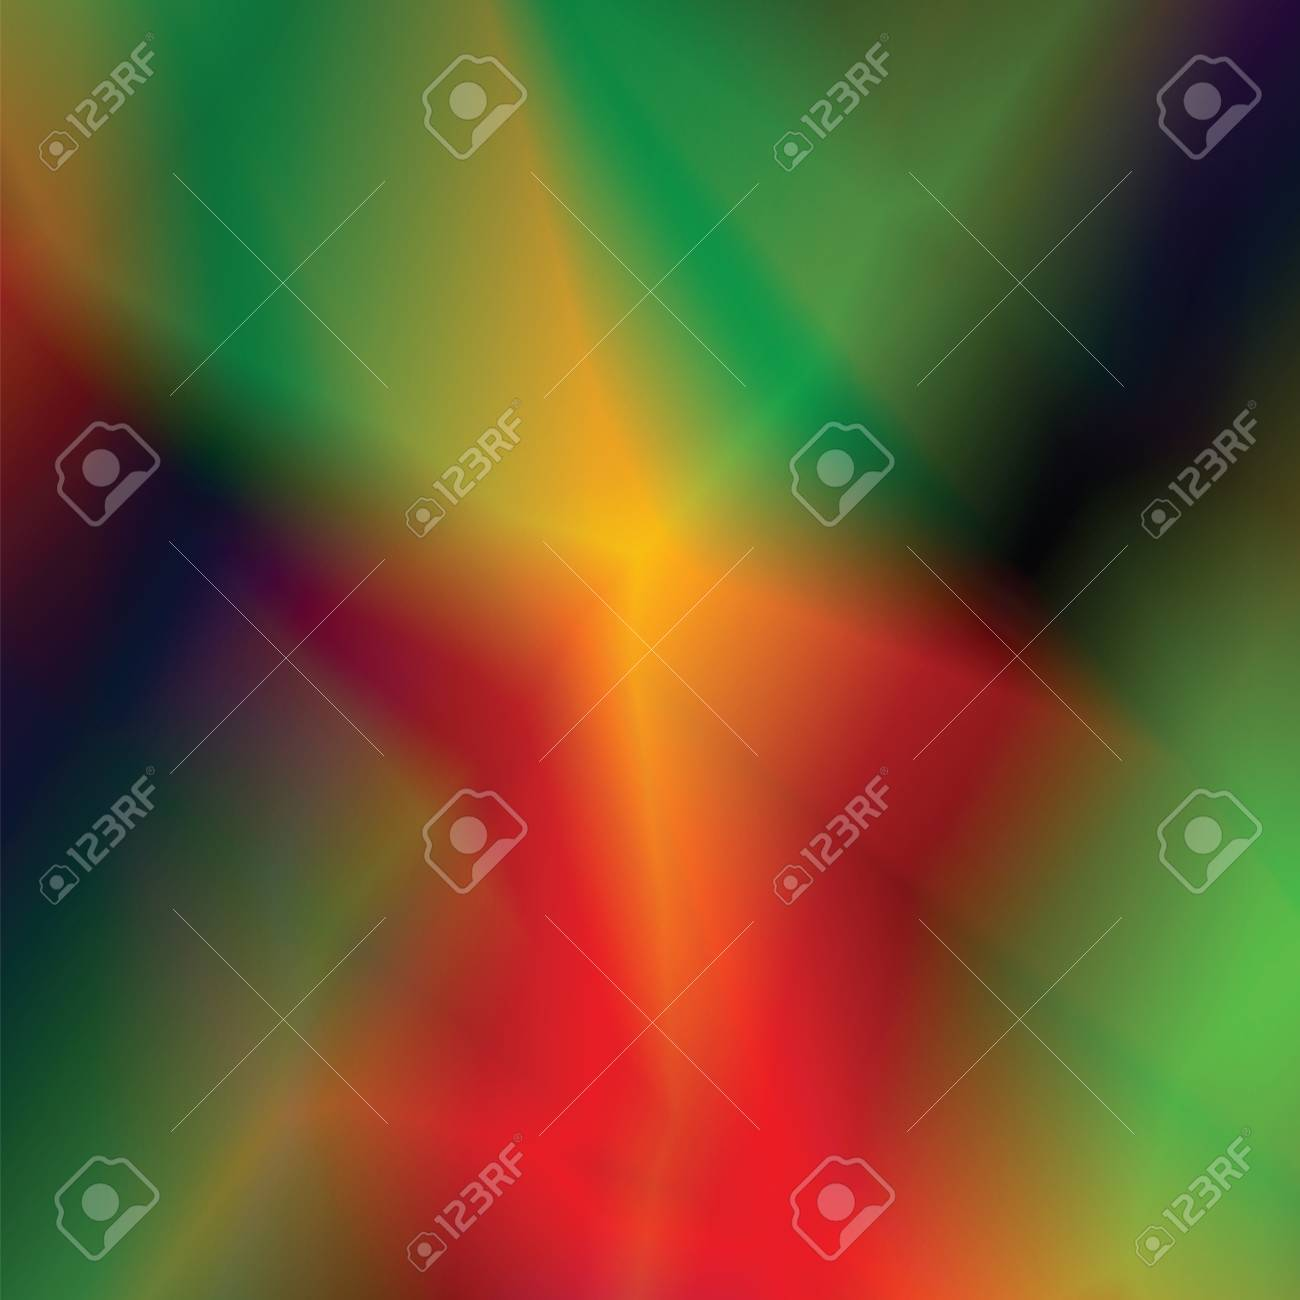 colorful illustration with  abstract  background  for your design Stock Vector - 18868382